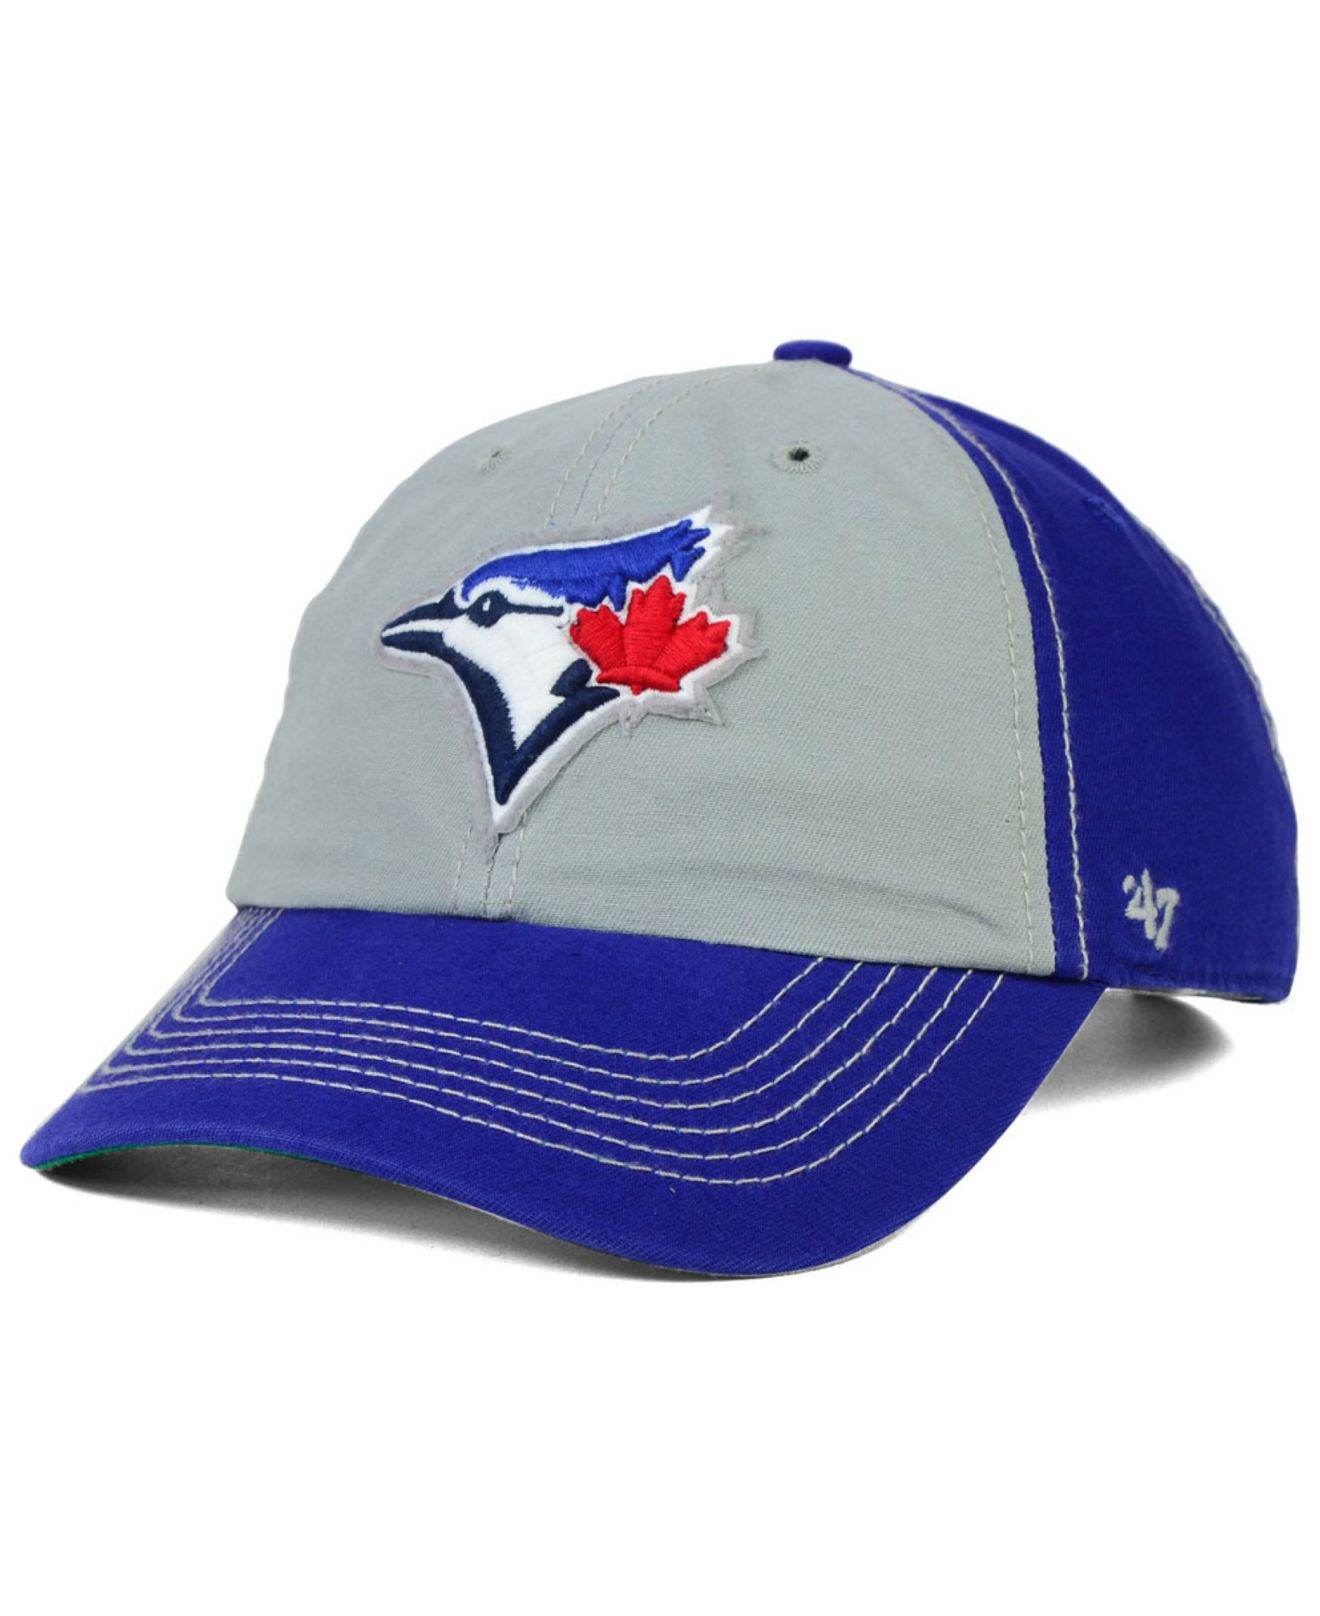 new arrival 5dda7 e1da8 ... clearance lyst 47 brand toronto blue jays adjustable clean up cap in  blue ed056 15eb3